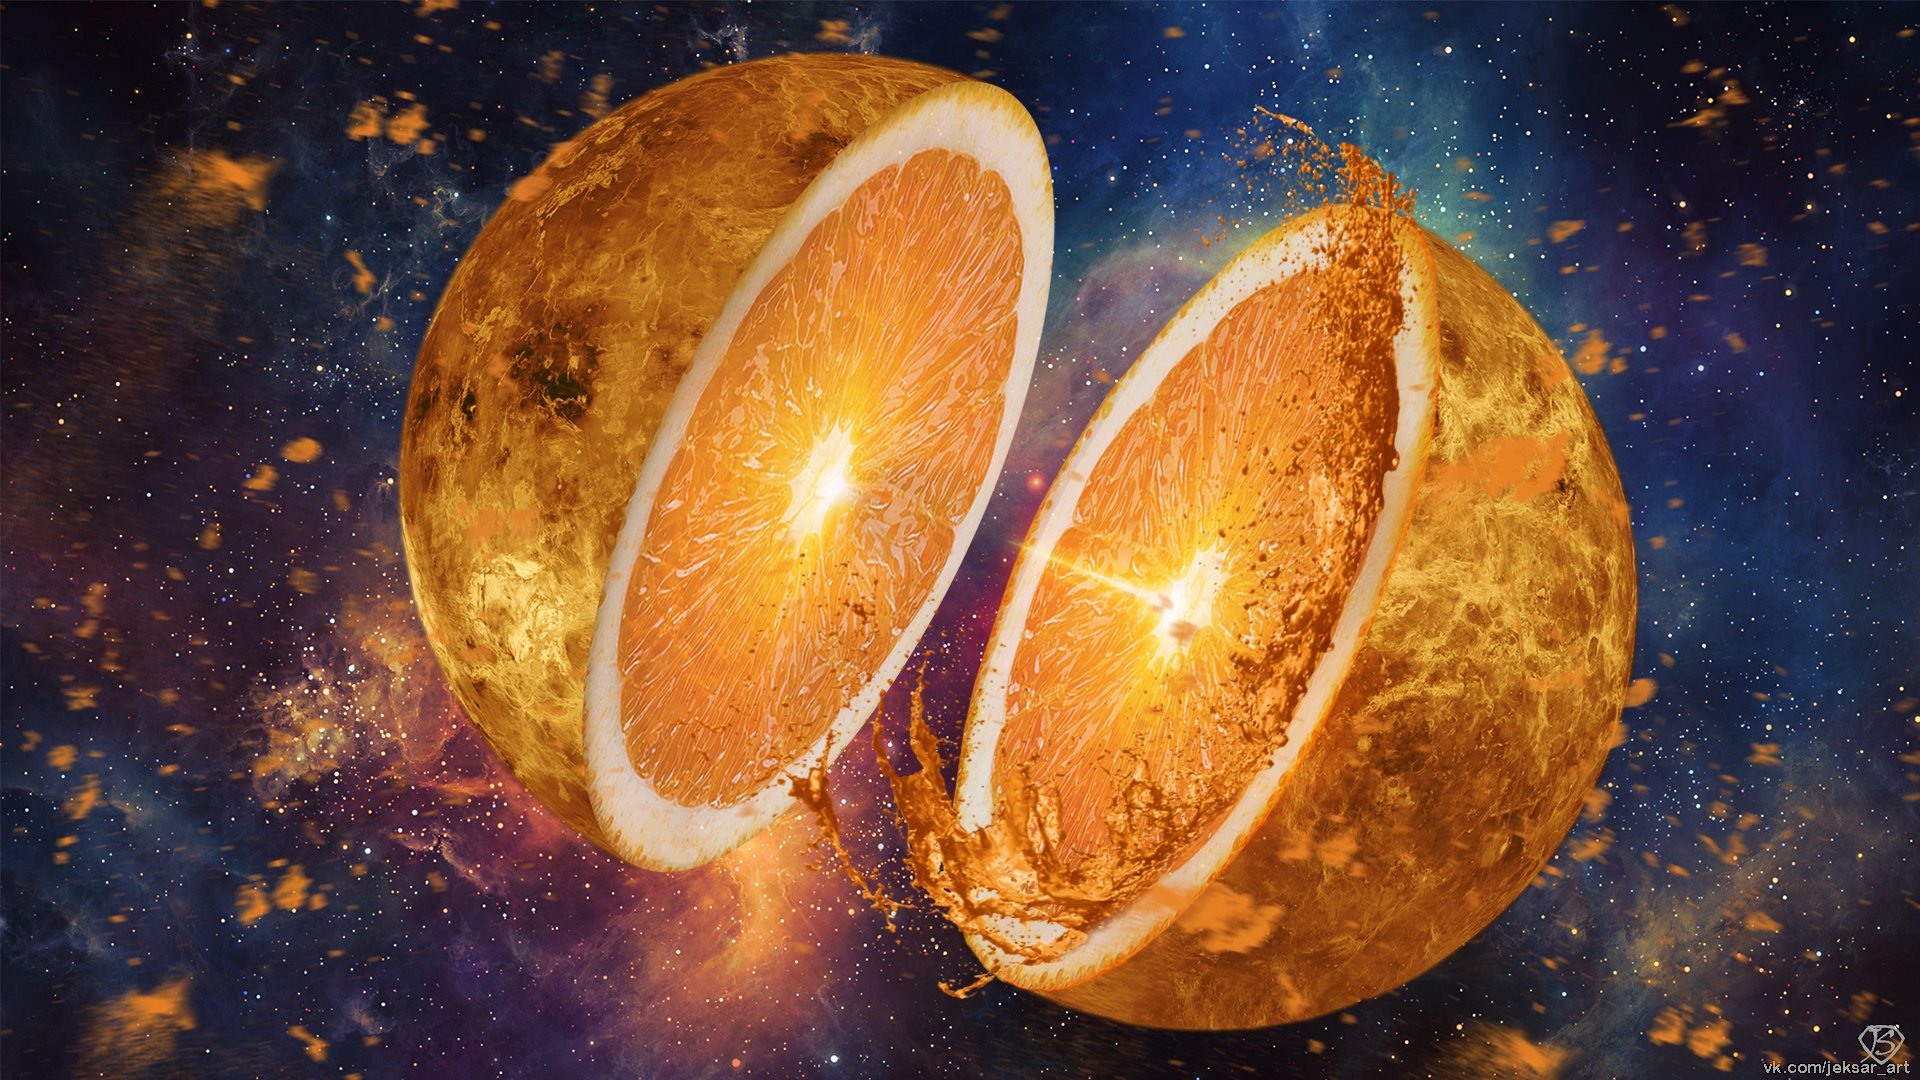 Sci Fi - Artistic  orange (Fruit) Planet Fruit Space Surreal Wallpaper